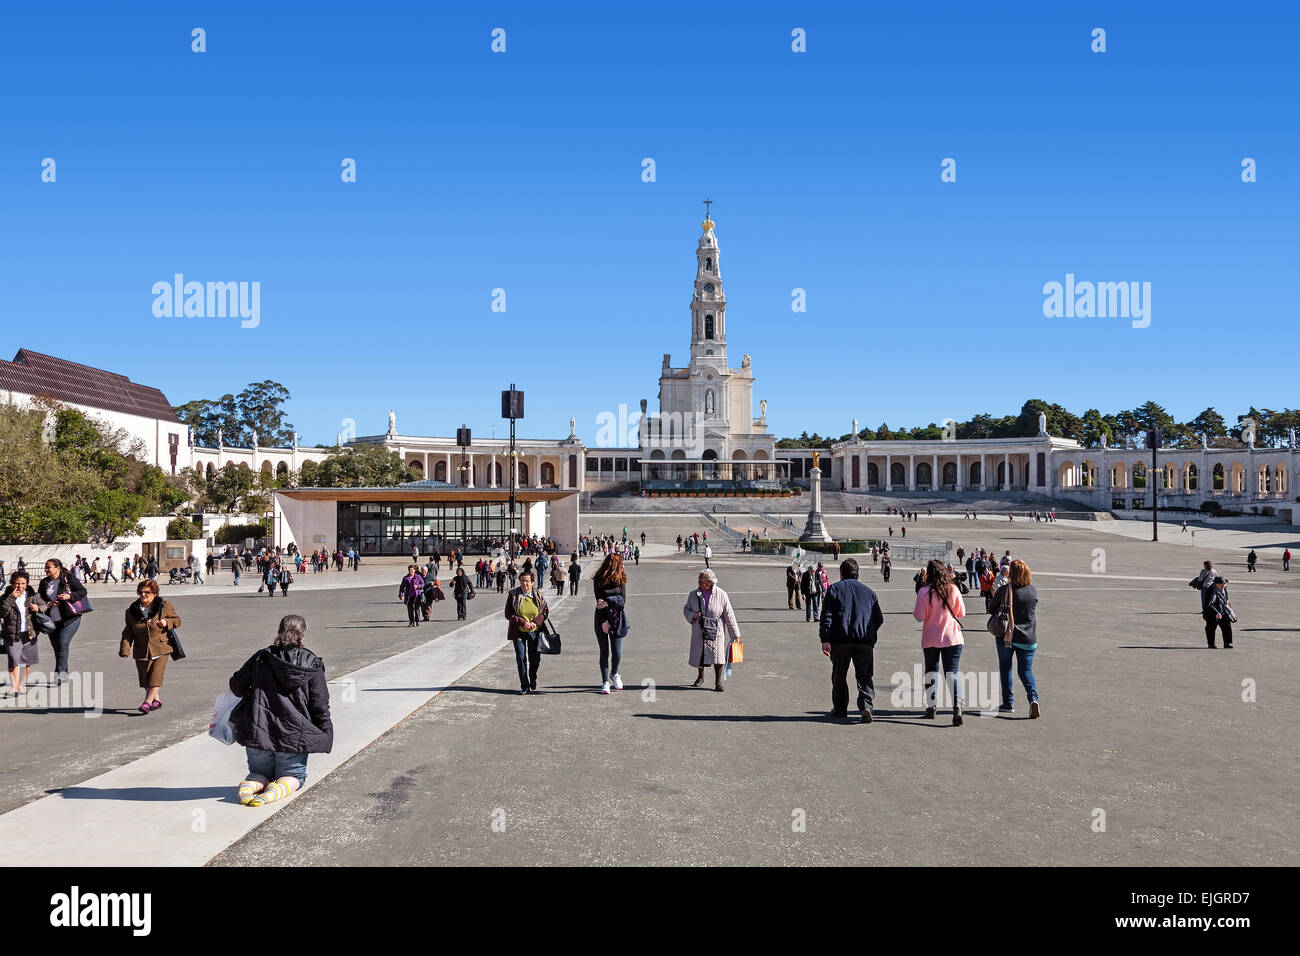 Devout walking the Penitential Path on knees and pilgrims. Our Lady of Rosary Basilica and Chapel of Apparitions - Stock Image